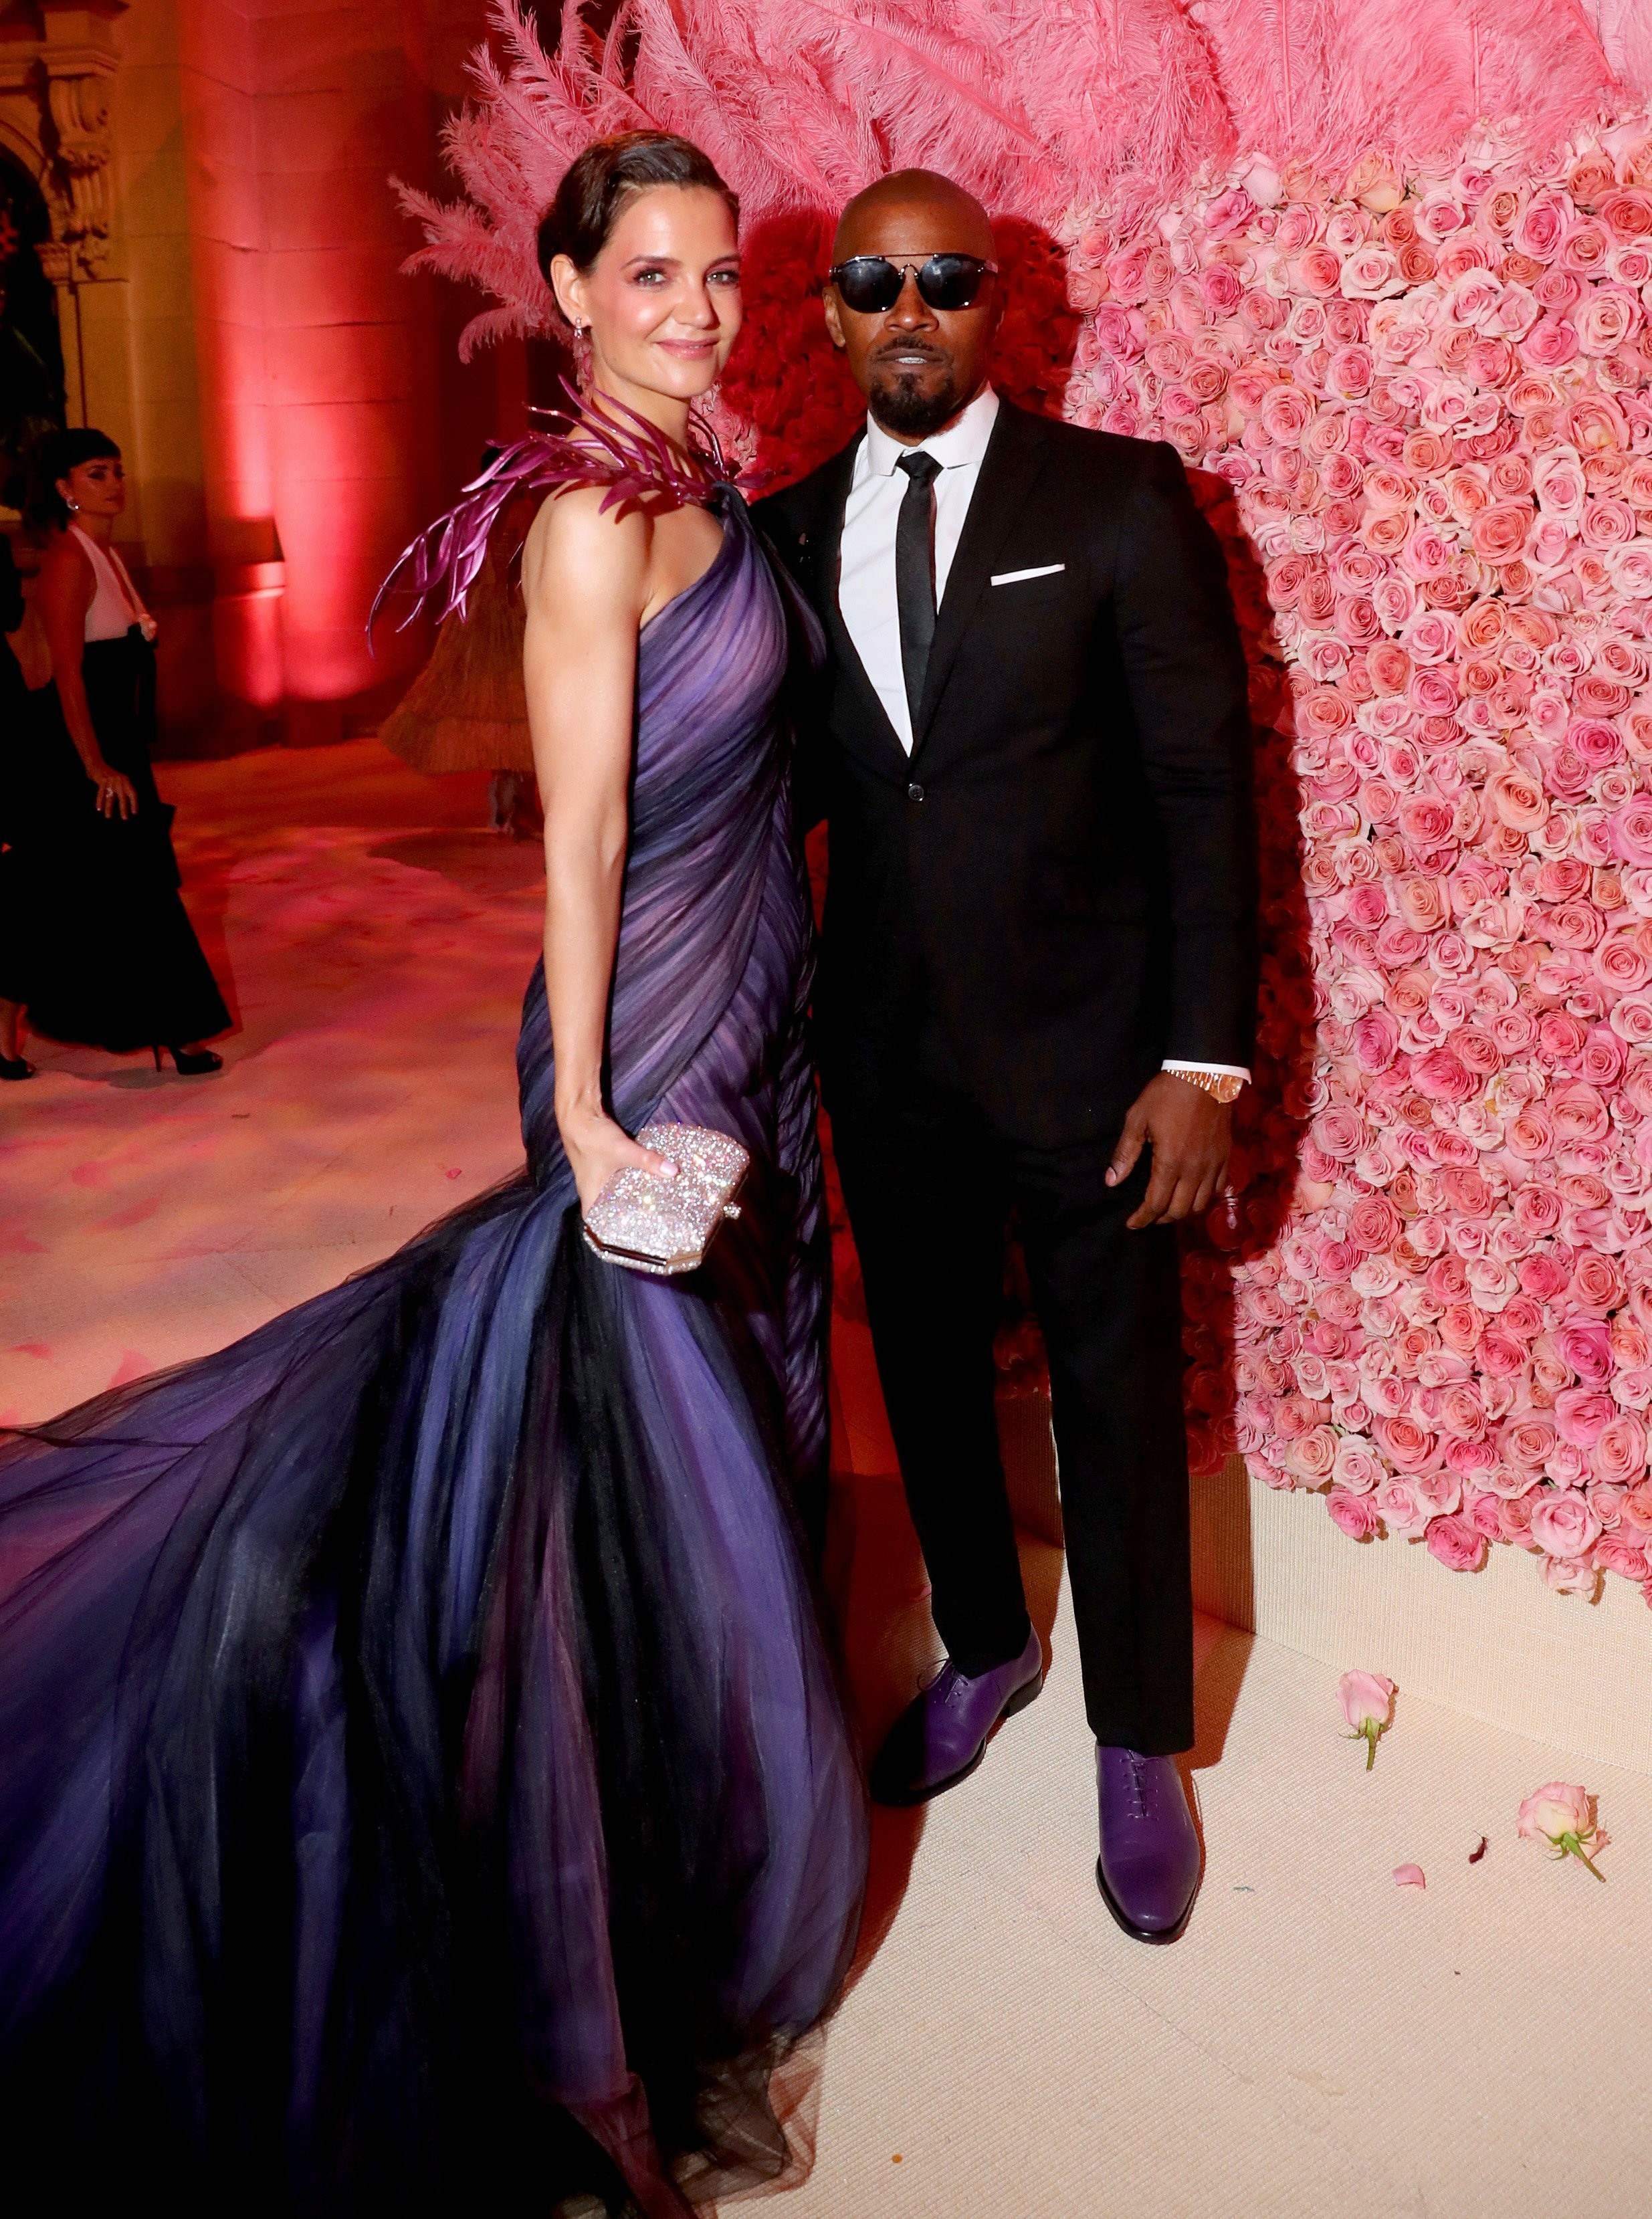 Jamie Foxx and Katie Holmes attend the 2019 Met Gala in New York City on May 6, 2019 | Photo: Getty Images